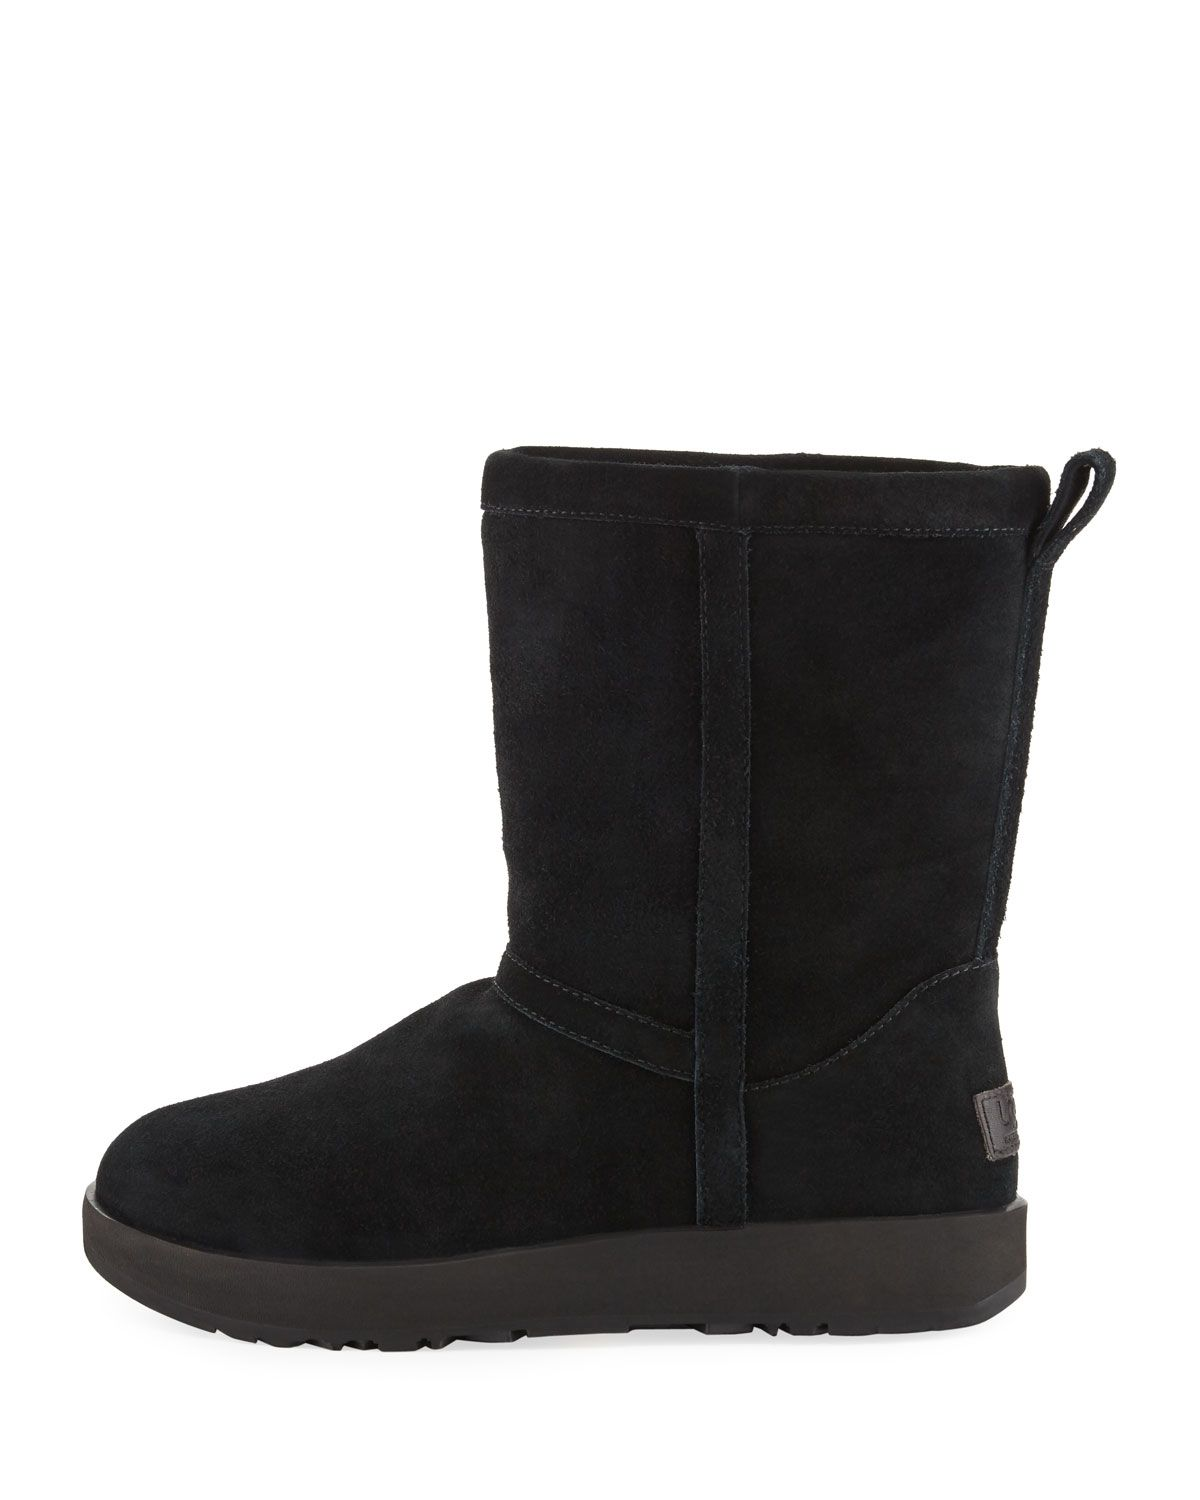 97ee8e6480b Classic Water-Resistant Short Boot | Products | Uggs, Ugg boots ...